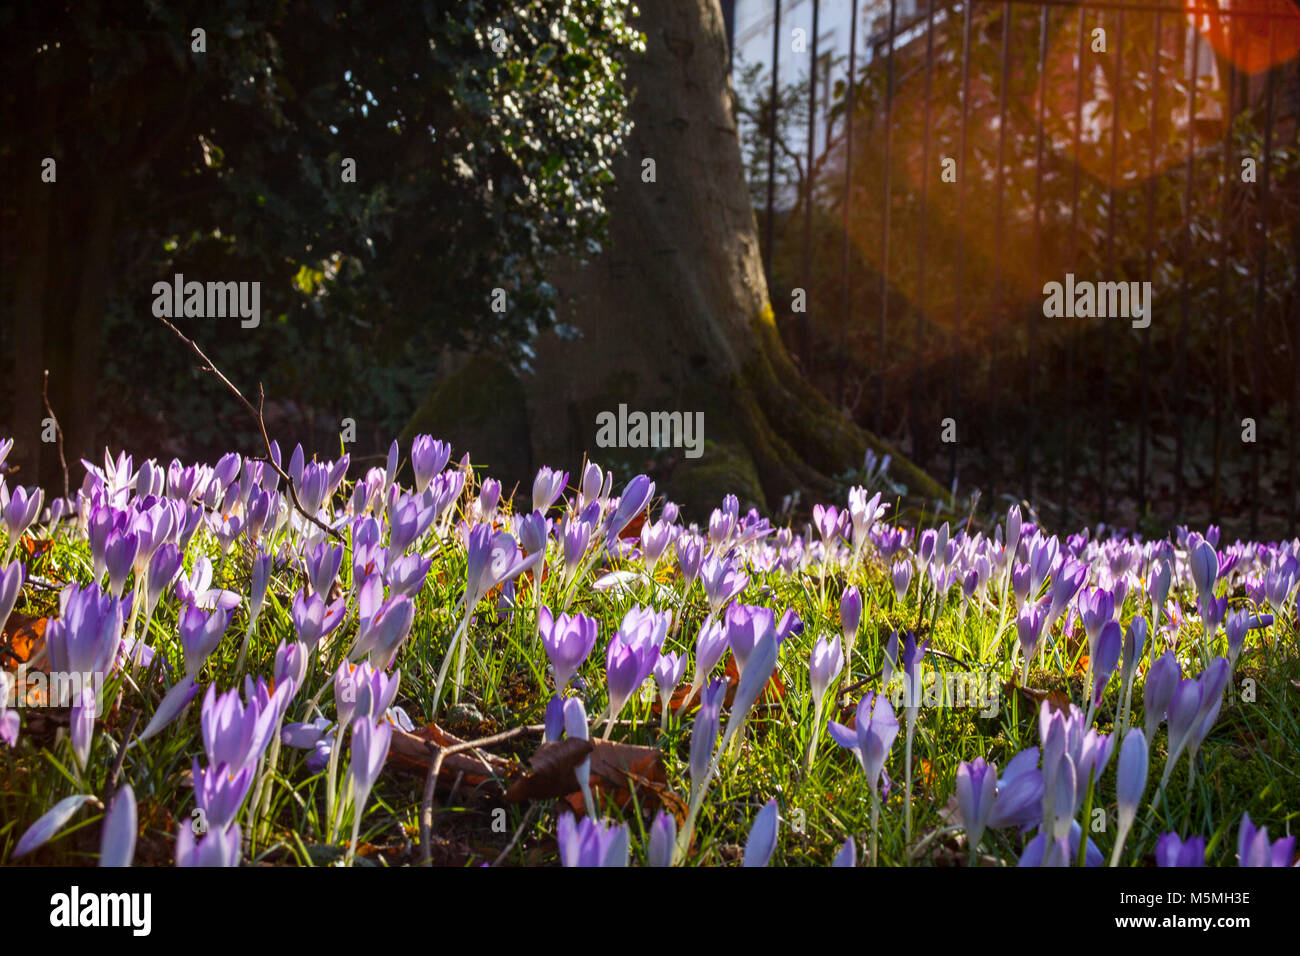 Beautiful colorful magic blooming first spring flowers purple crocus beautiful colorful magic blooming first spring flowers purple crocus in wild nature field sunset sunlight in forest horizontal copy space mistery mightylinksfo